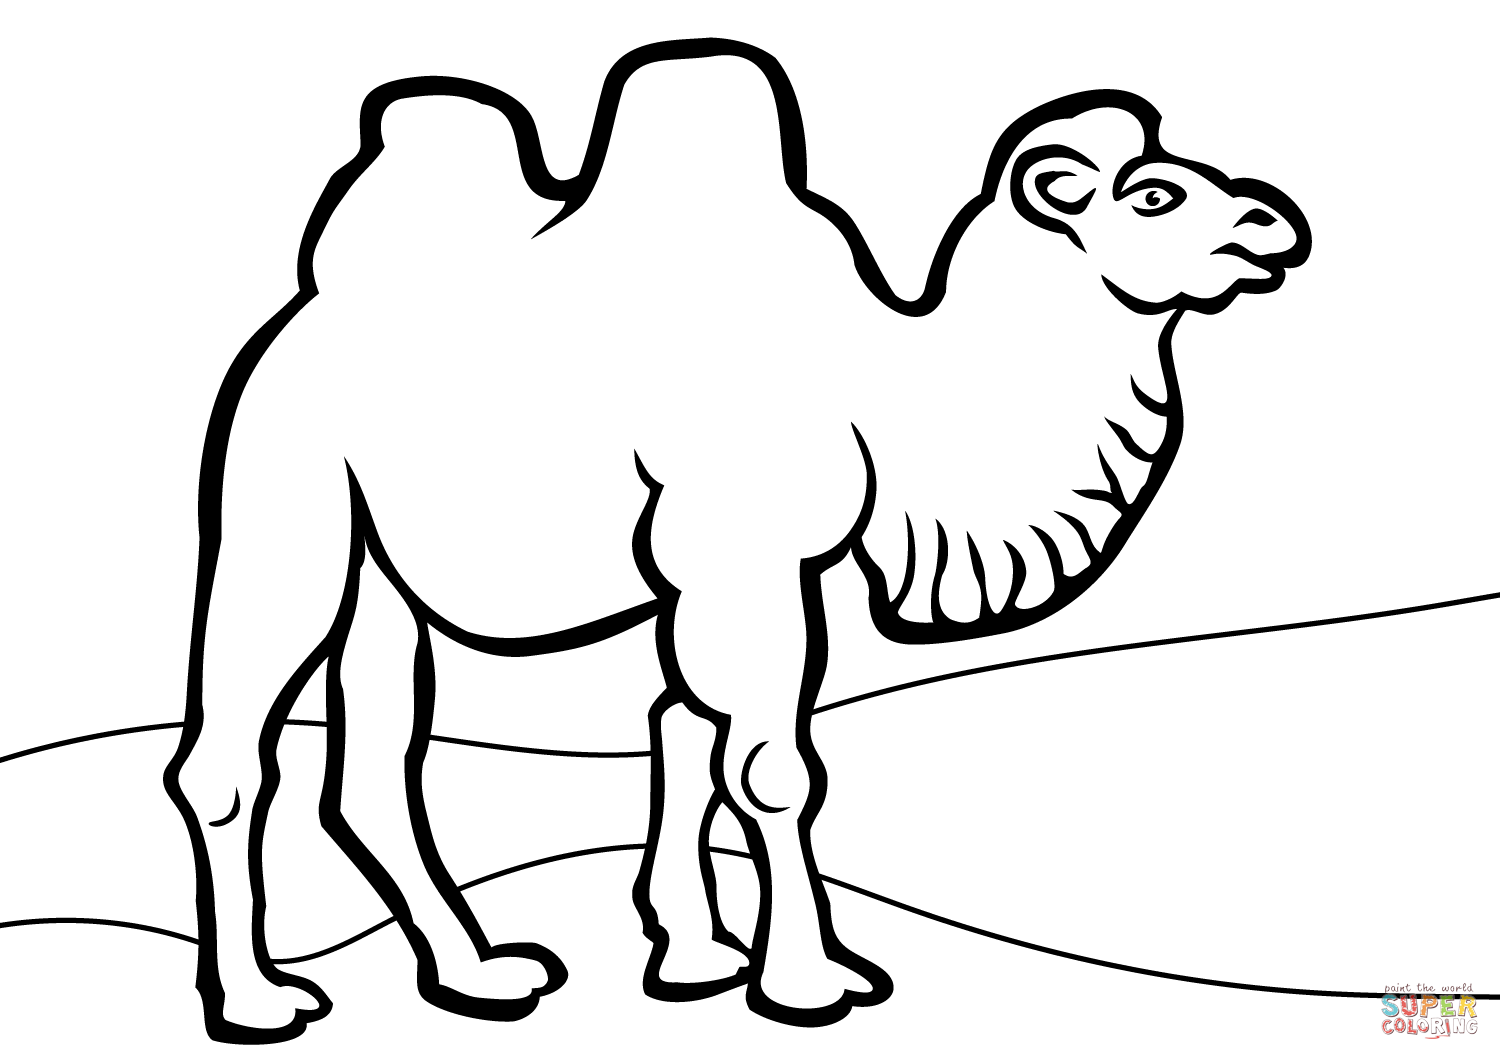 coloring pages camel free printable camel coloring pages for kids coloring camel pages